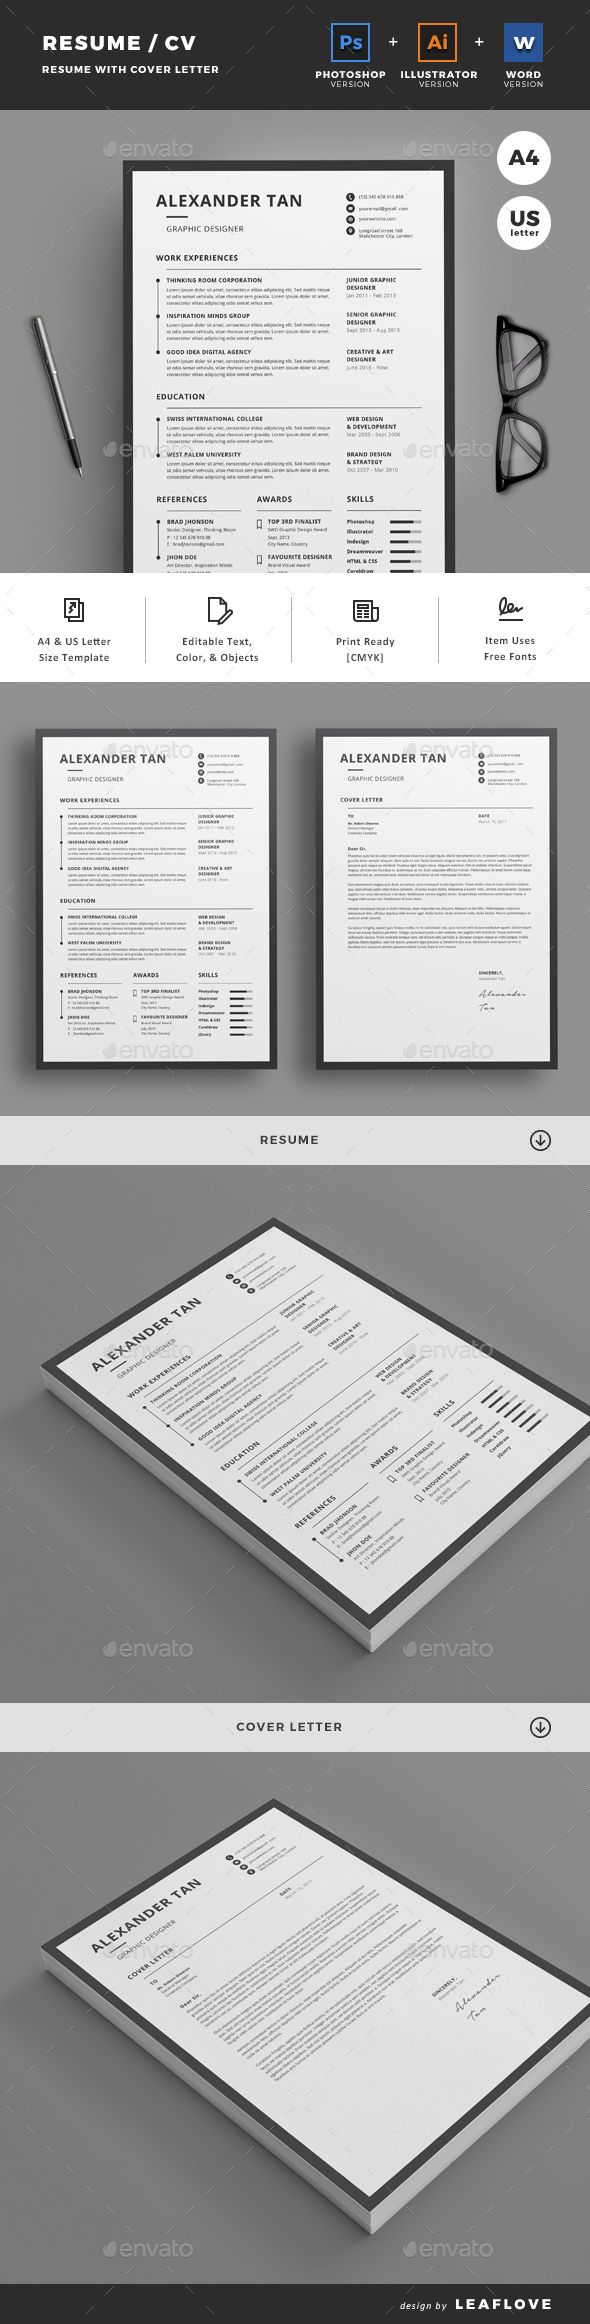 CV #docx #professional  • Download here → https://graphicriver.net/item/cv/19559881?ref=pxcr